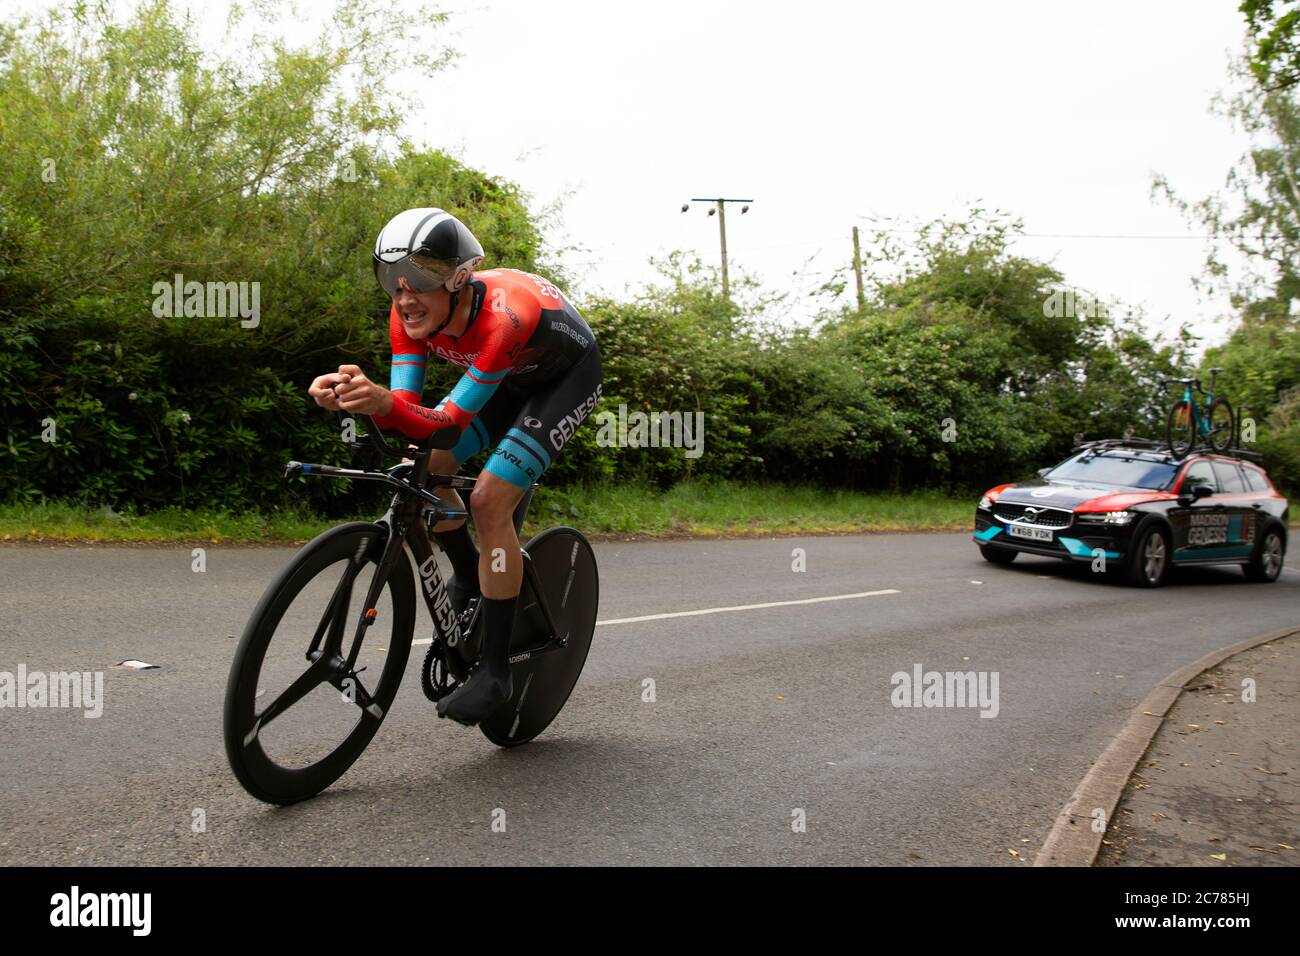 Joe (Joseph) Laverick of Madison Genesis competing at the 2019 UK Cycling Championships, Under-23 Men's time-trial, held at Sandringham, Norfolk. Stock Photo